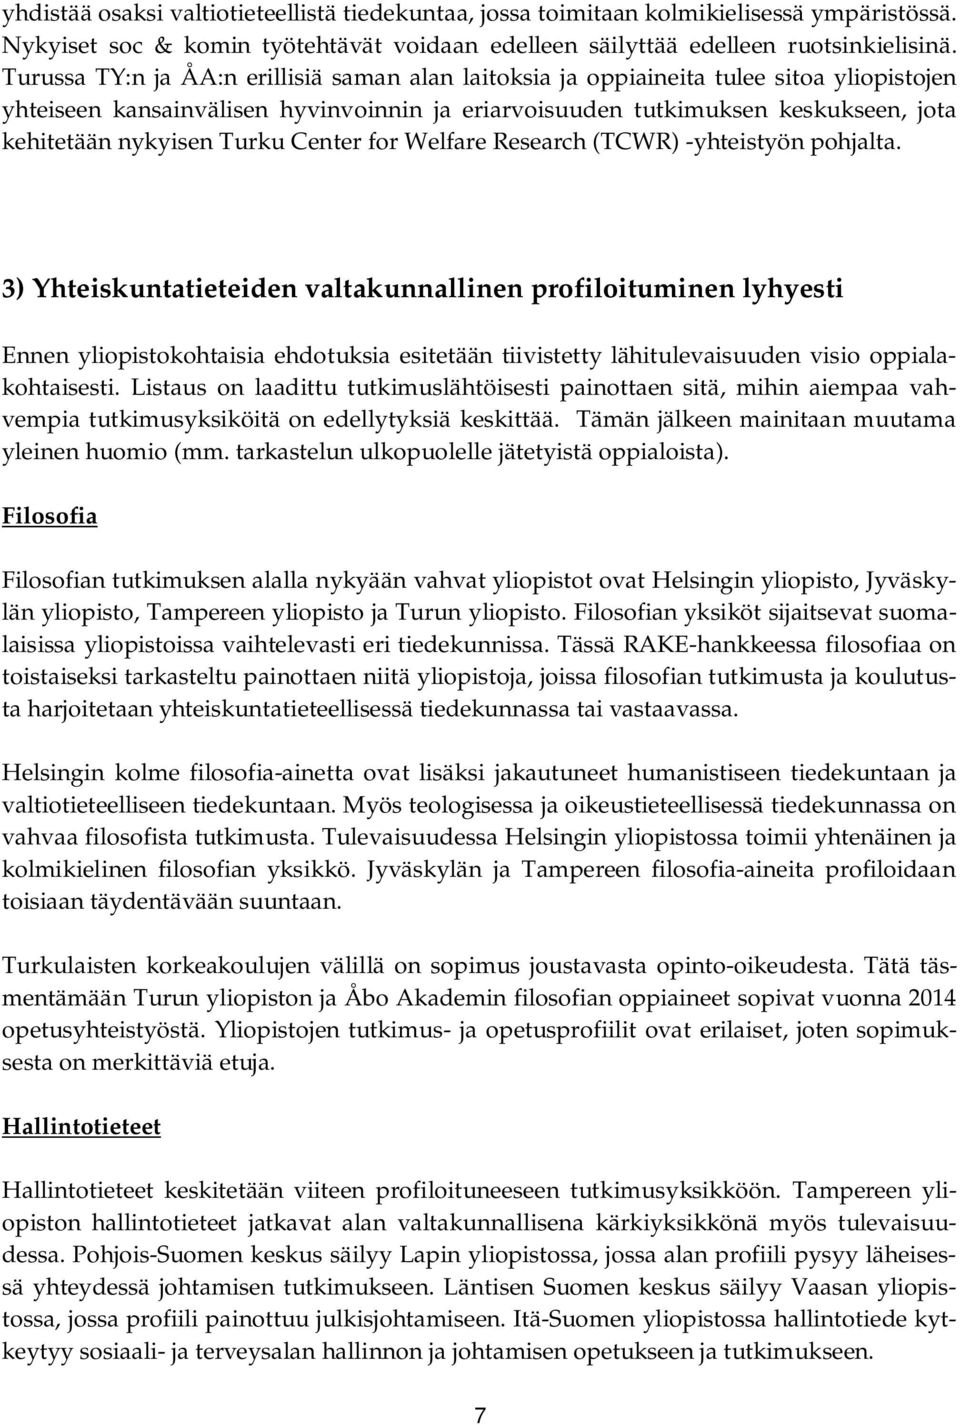 Turku Center for Welfare Research (TCWR) -yhteistyön pohjalta.